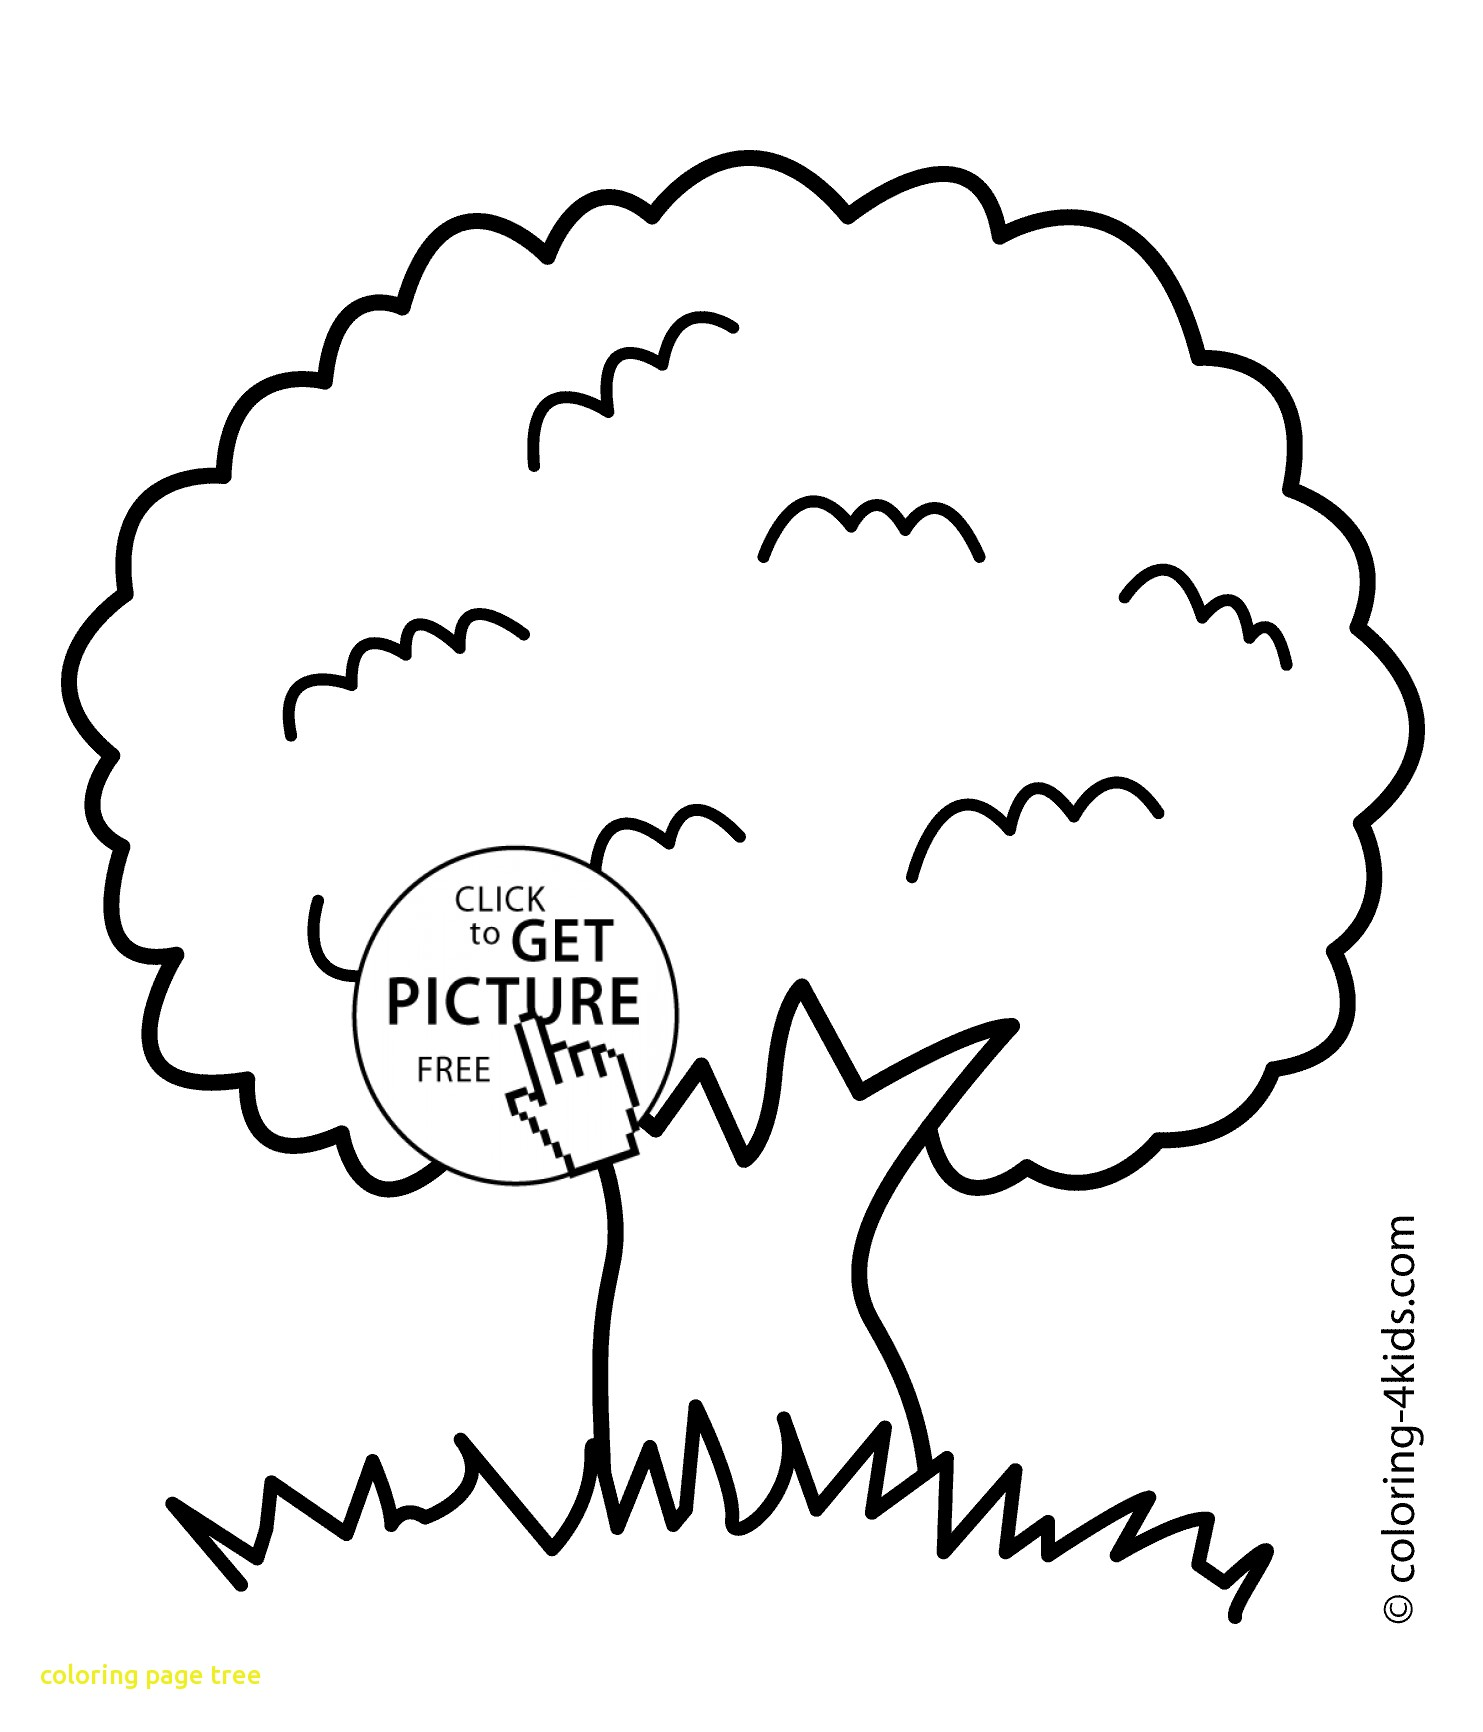 1483x1732 Inspiration Coloring Pages Olive Tree